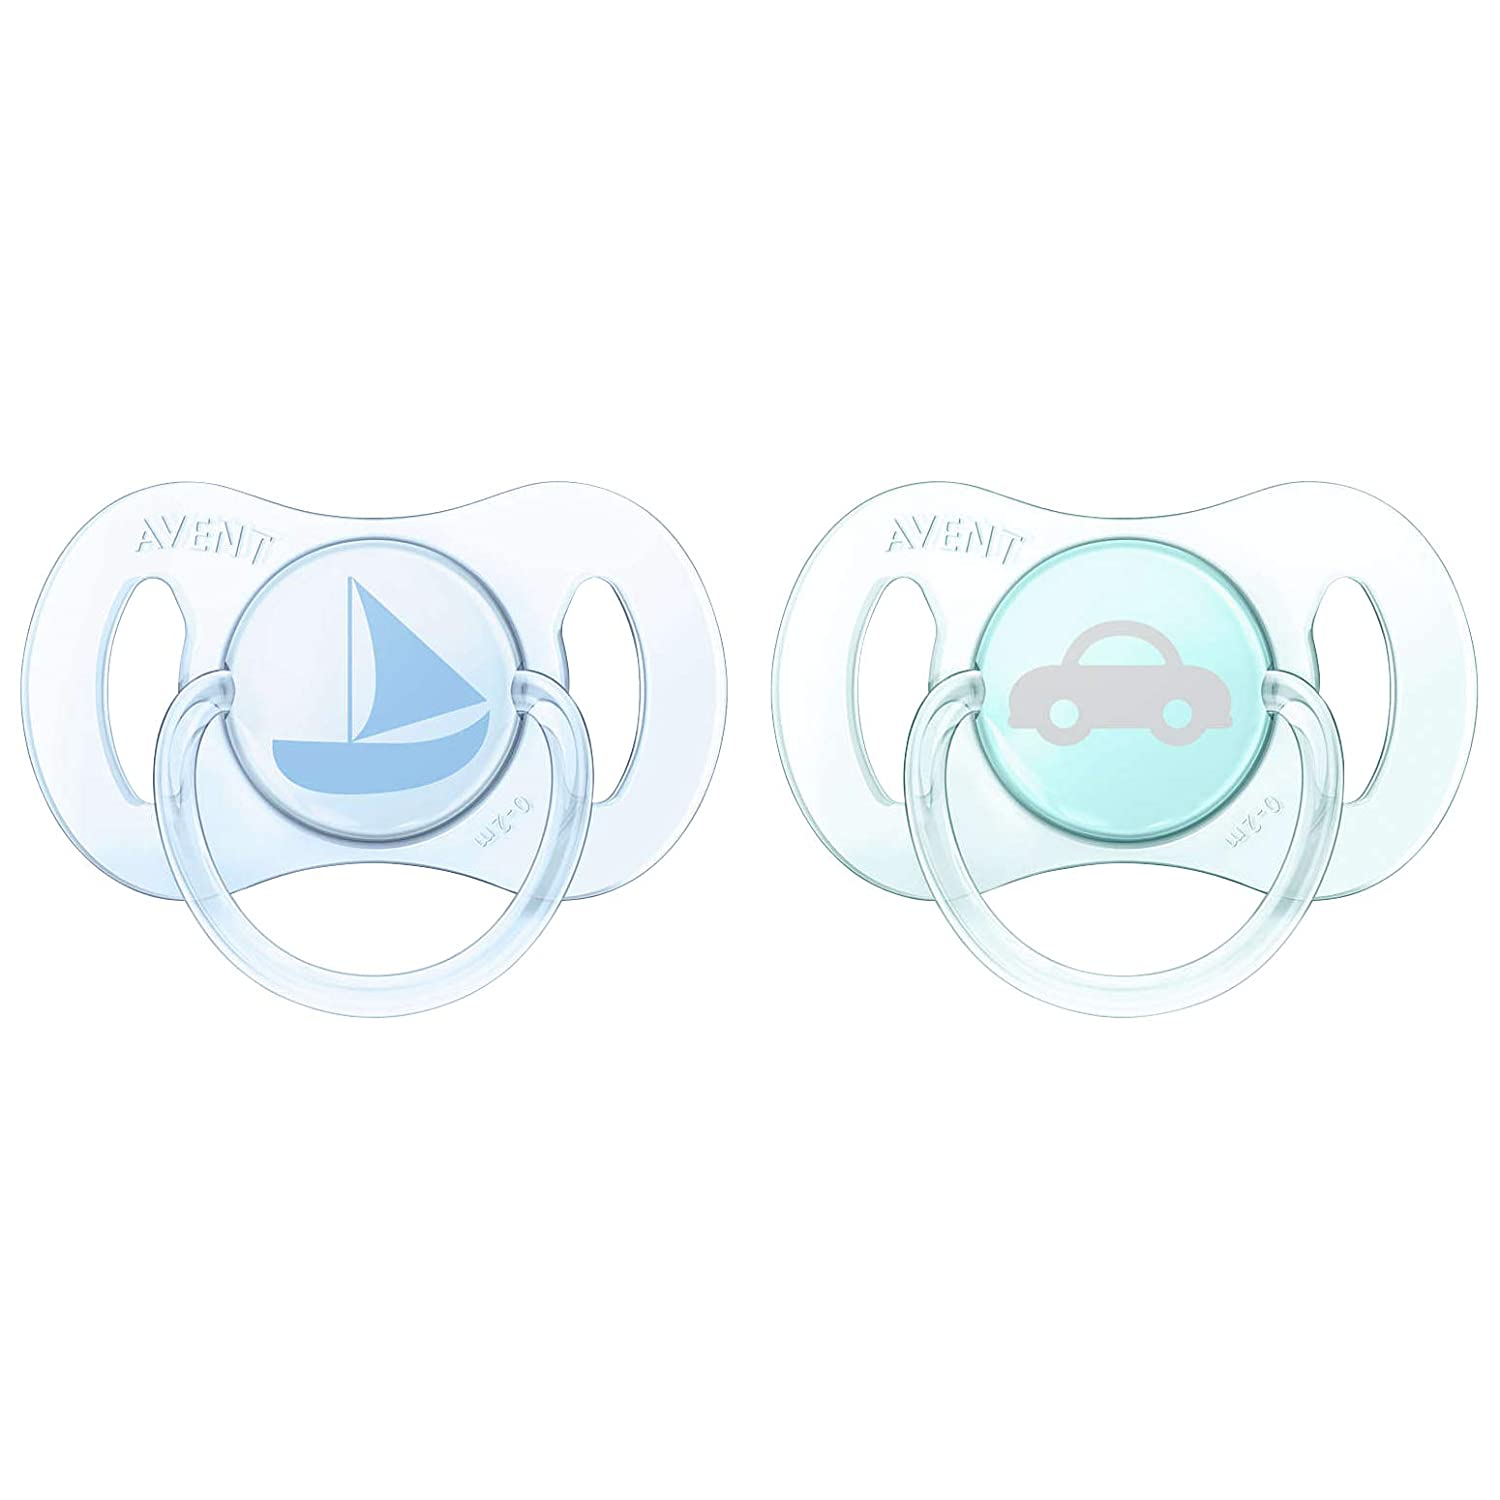 Amazon.com: Philips Avent Sailboat/Car Pack de dos chupetes ...